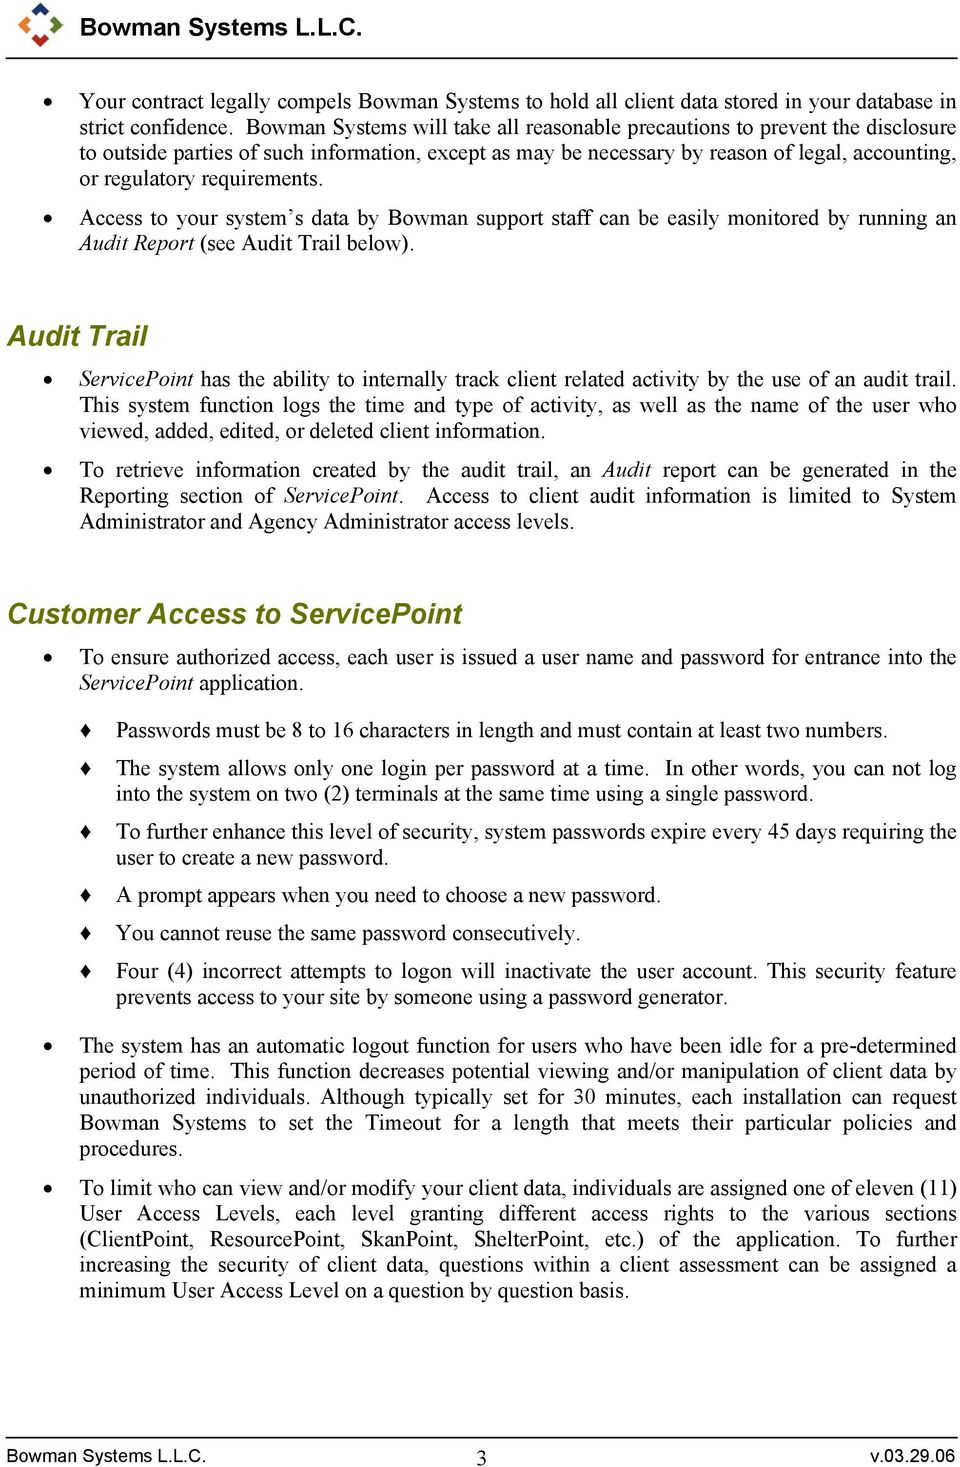 requirements. Access to your system s data by Bowman support staff can be easily monitored by running an Audit Report (see Audit Trail below).